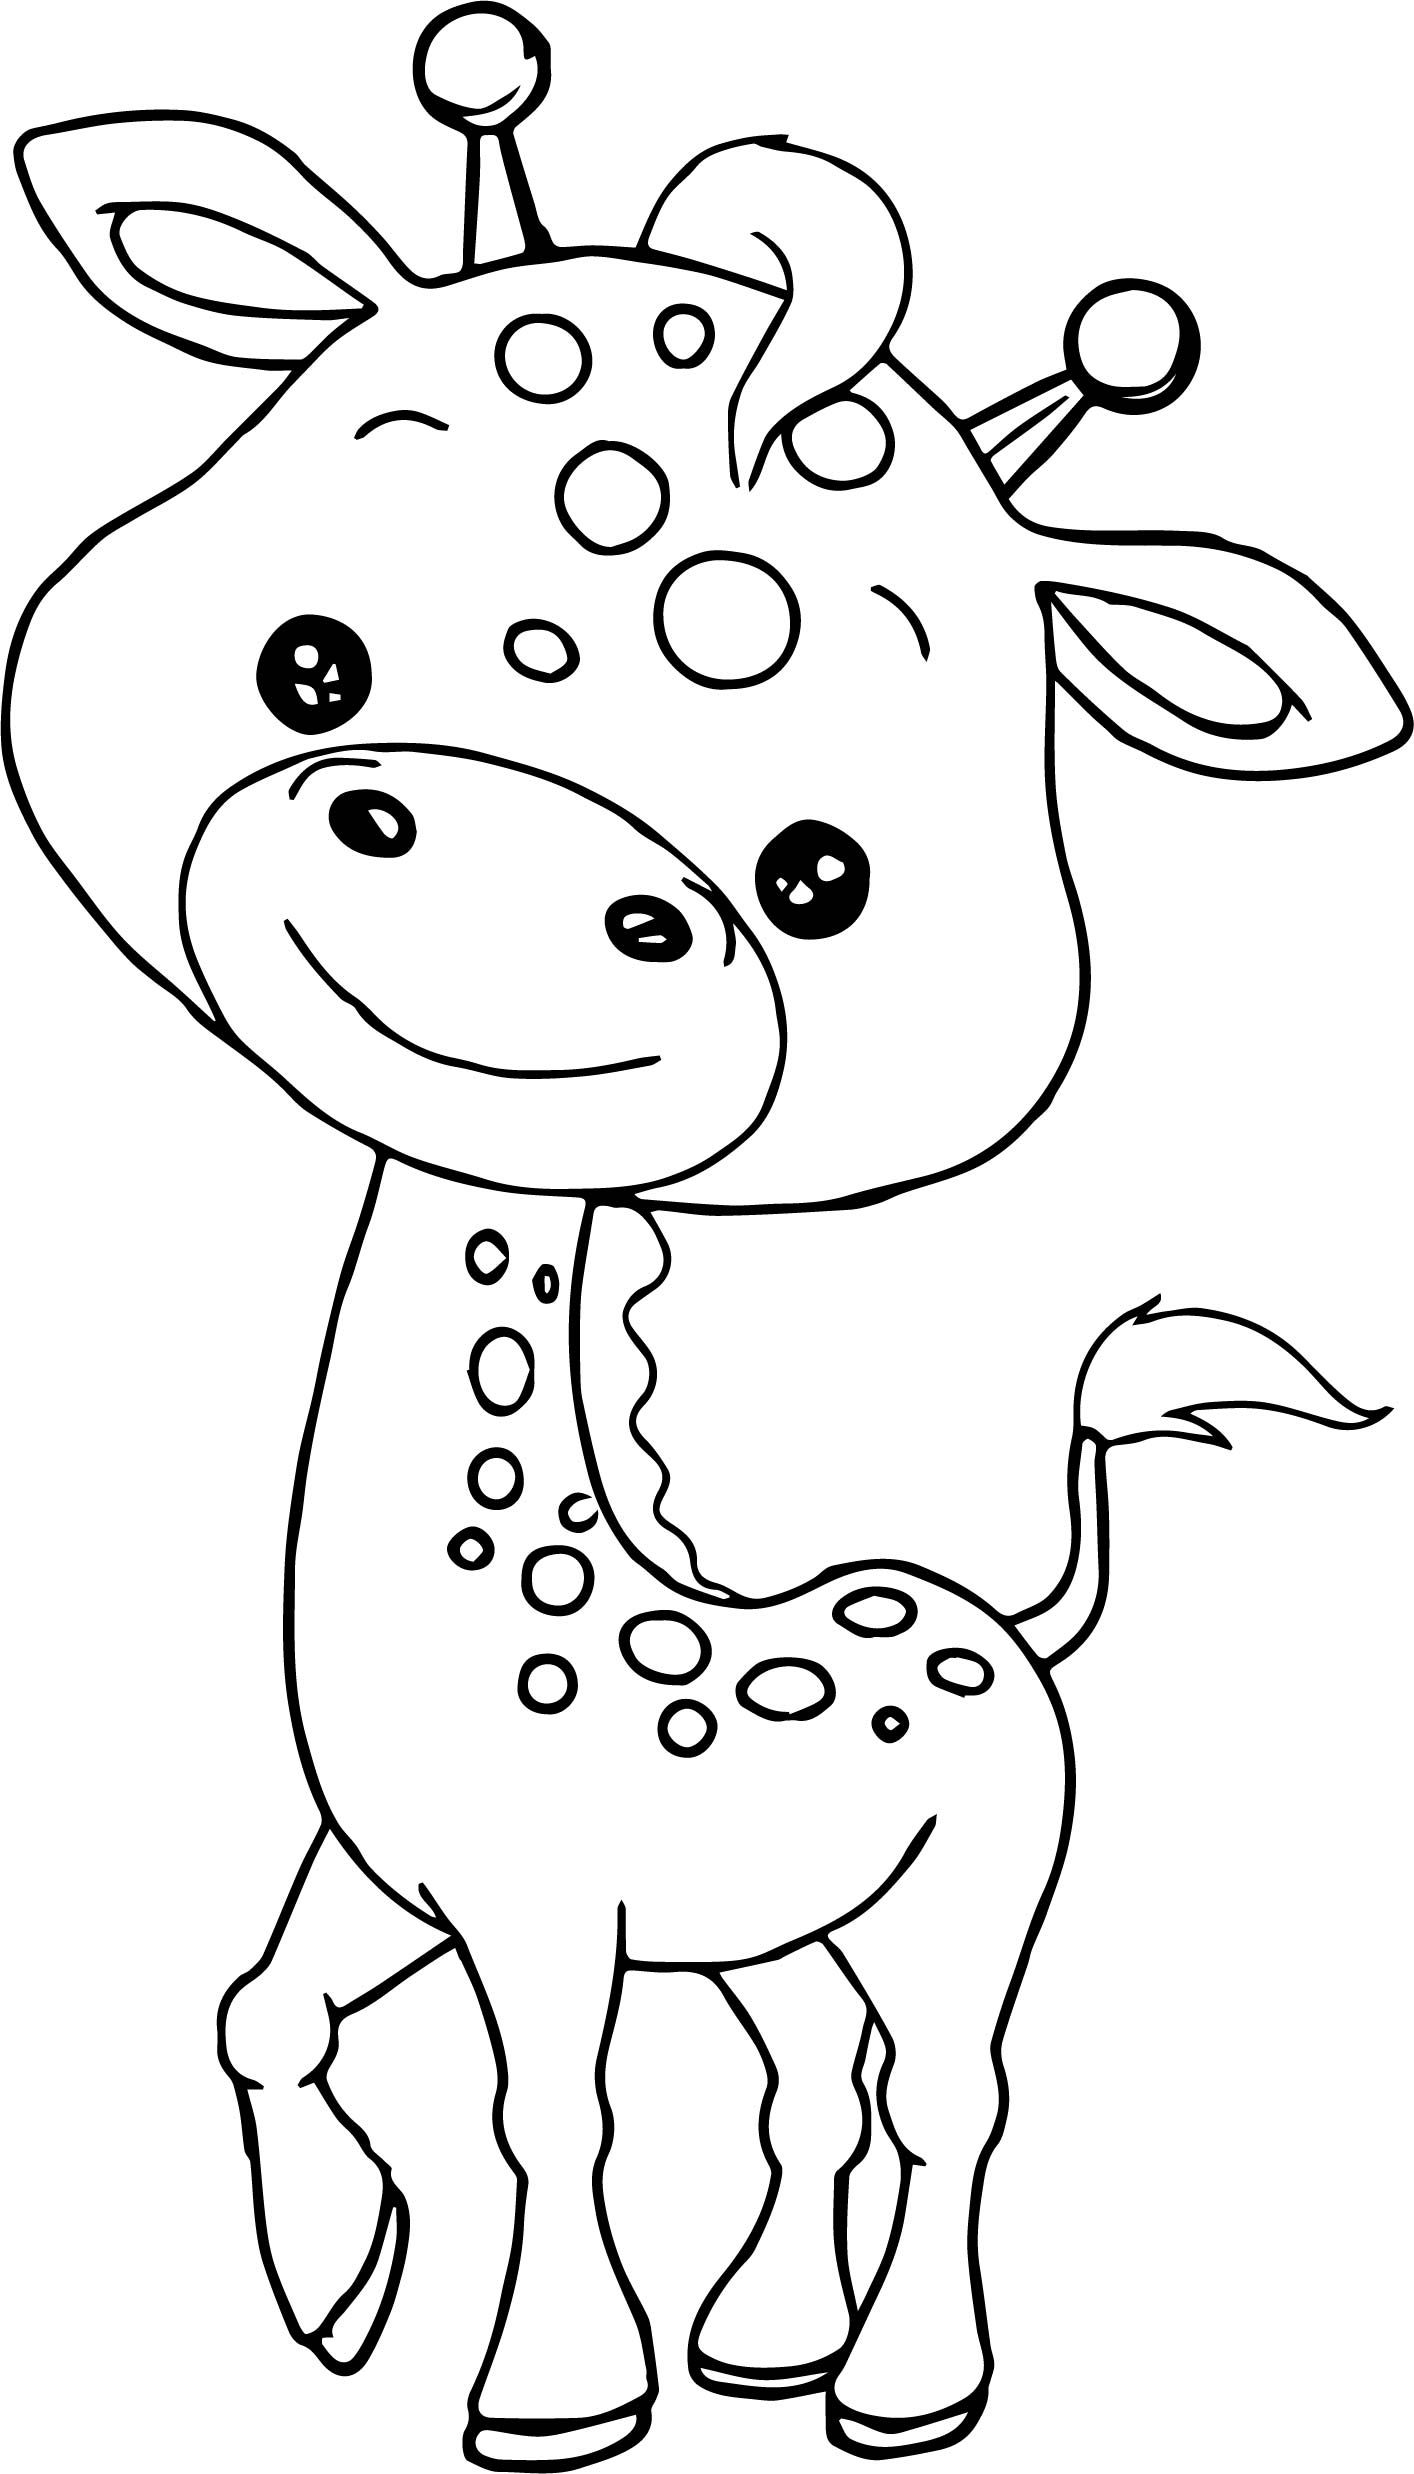 Awesome Baby Jungle Free Animal Coloring Page Zoo Animal Coloring Pages Elephant Coloring Page Giraffe Coloring Pages